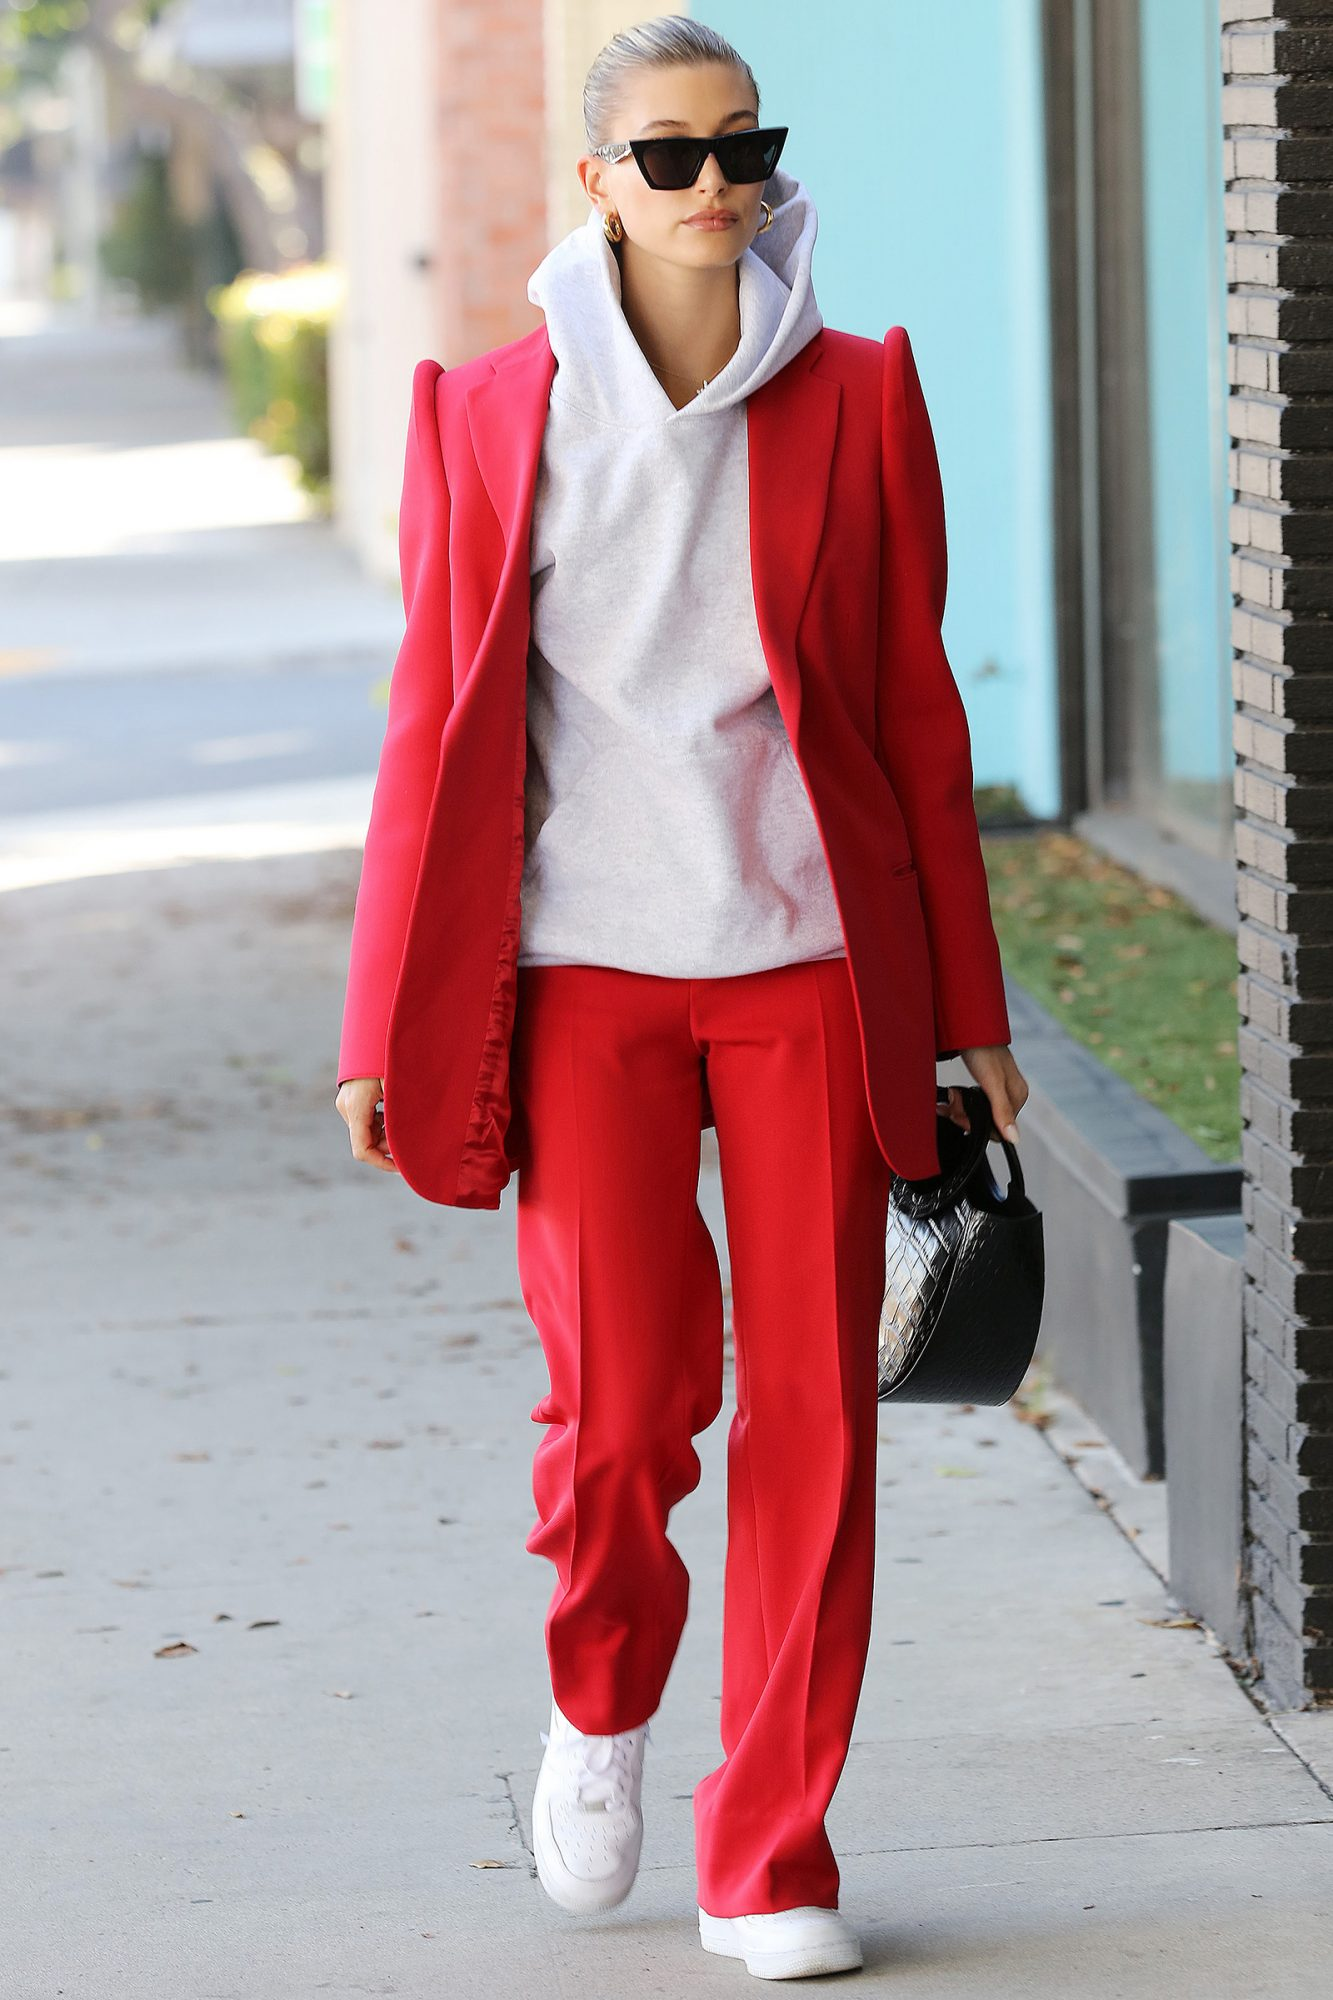 Hailey Rhode Bieber walks in stunning red and white outfit in Los Angeles